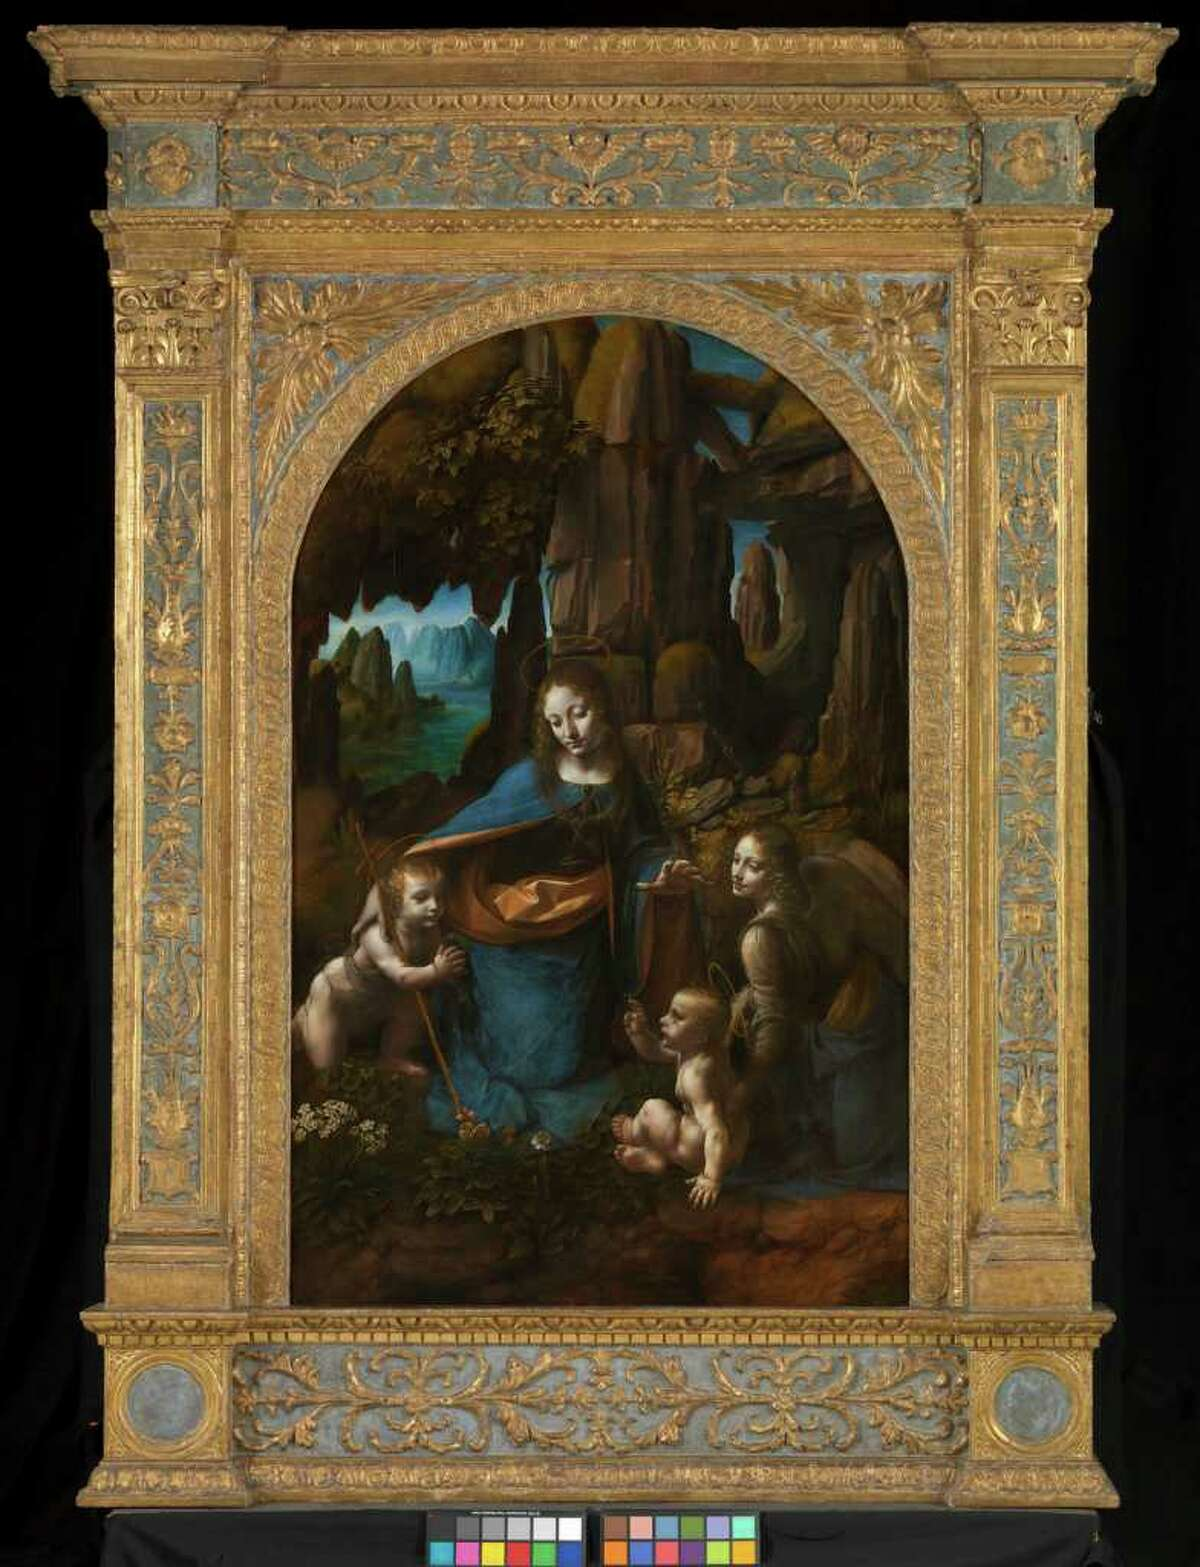 """The """"Virgin of the Rocks,"""" at the National Gallery in London, in an undated handout image. On Feb. 16, those who missed the Leonardo da Vinci blockbuster show of his work at the National Gallery London, will have an opportunity to view it on the film """"Leonardo Live,"""" at selected American theaters nationwide and around the world. (The National Gallery, London via The New York Times) -- NO SALES; FOR EDITORIAL USE ONLY WITH STORY SLUGGED FILM LEONARDO LIVE. ALL OTHER USE PROHIBITED. -"""